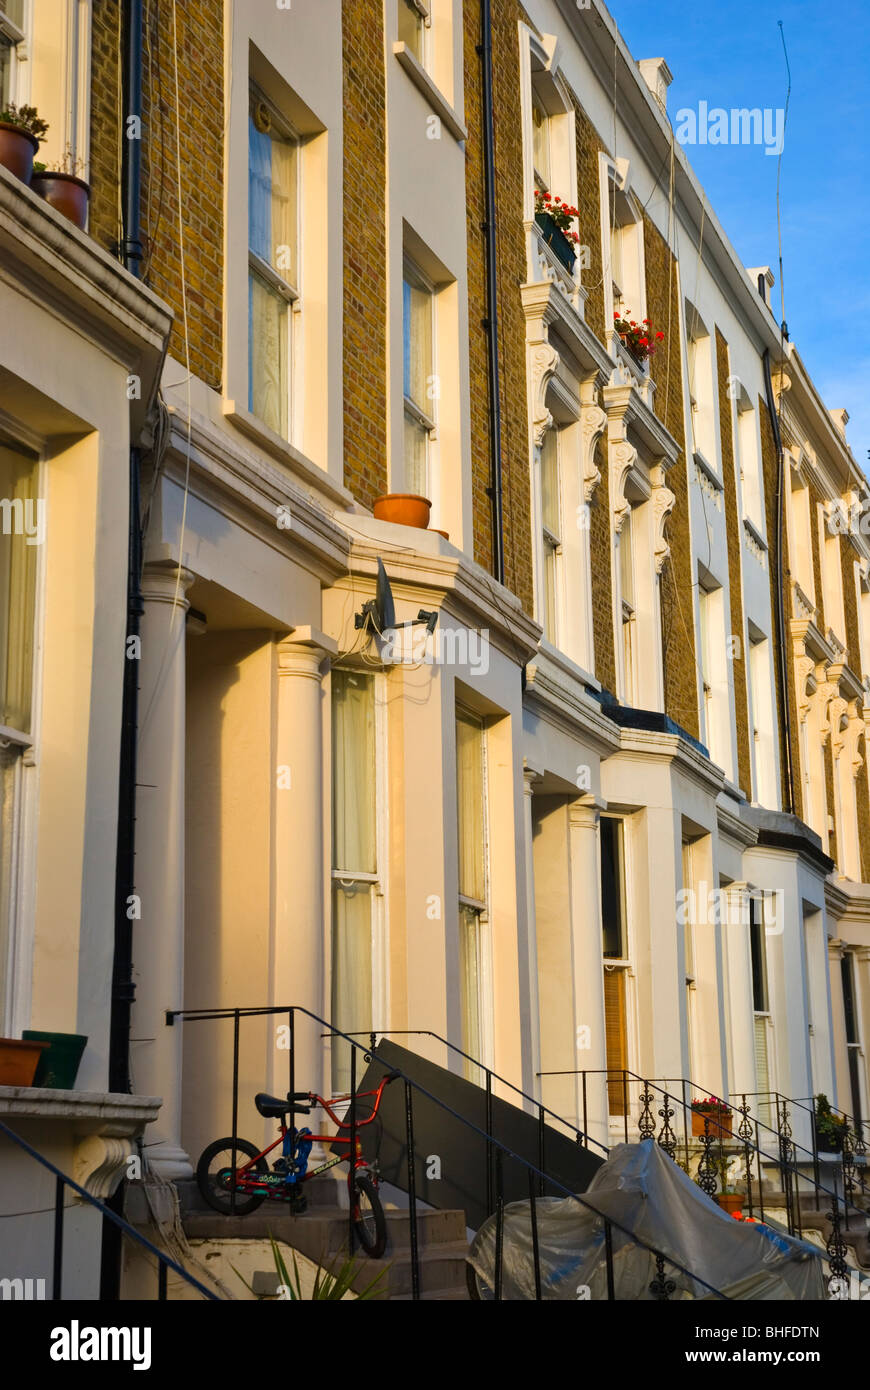 House facade Ladbroke Grove North Kensington London England UK Europe Stock Photo